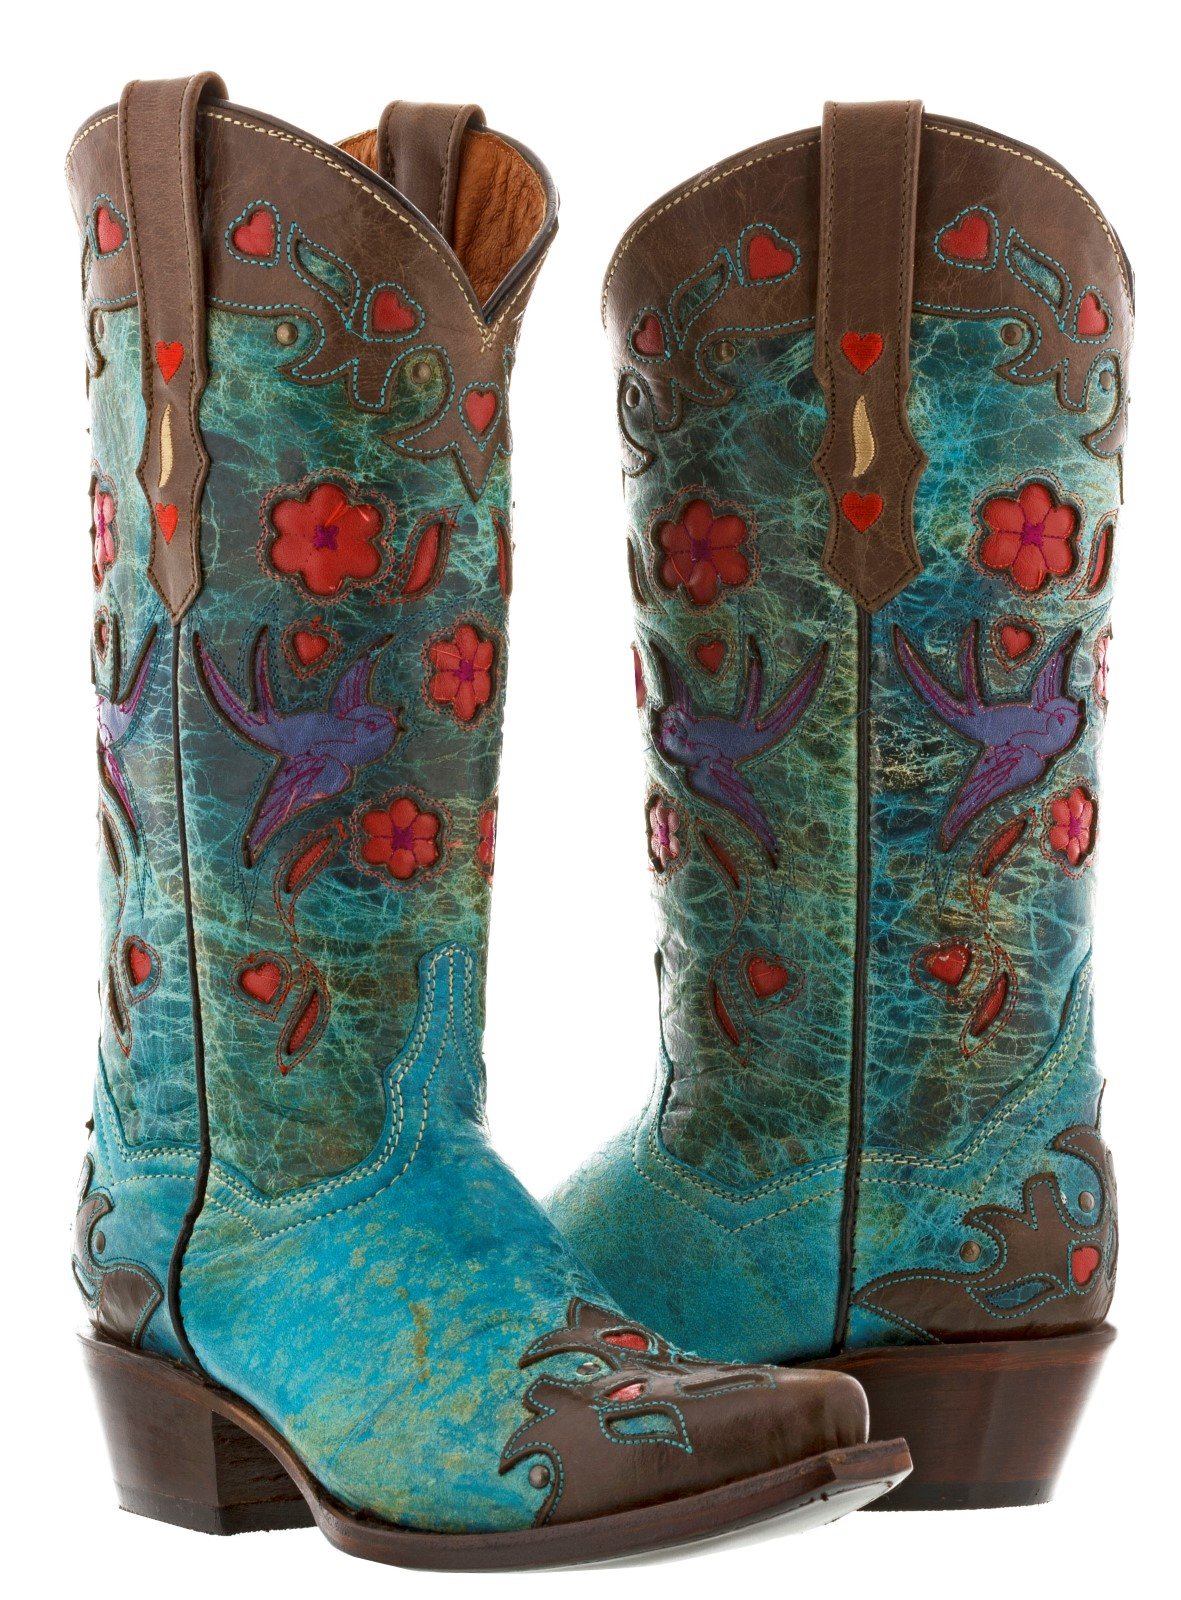 Blue Boots for Women | eBay